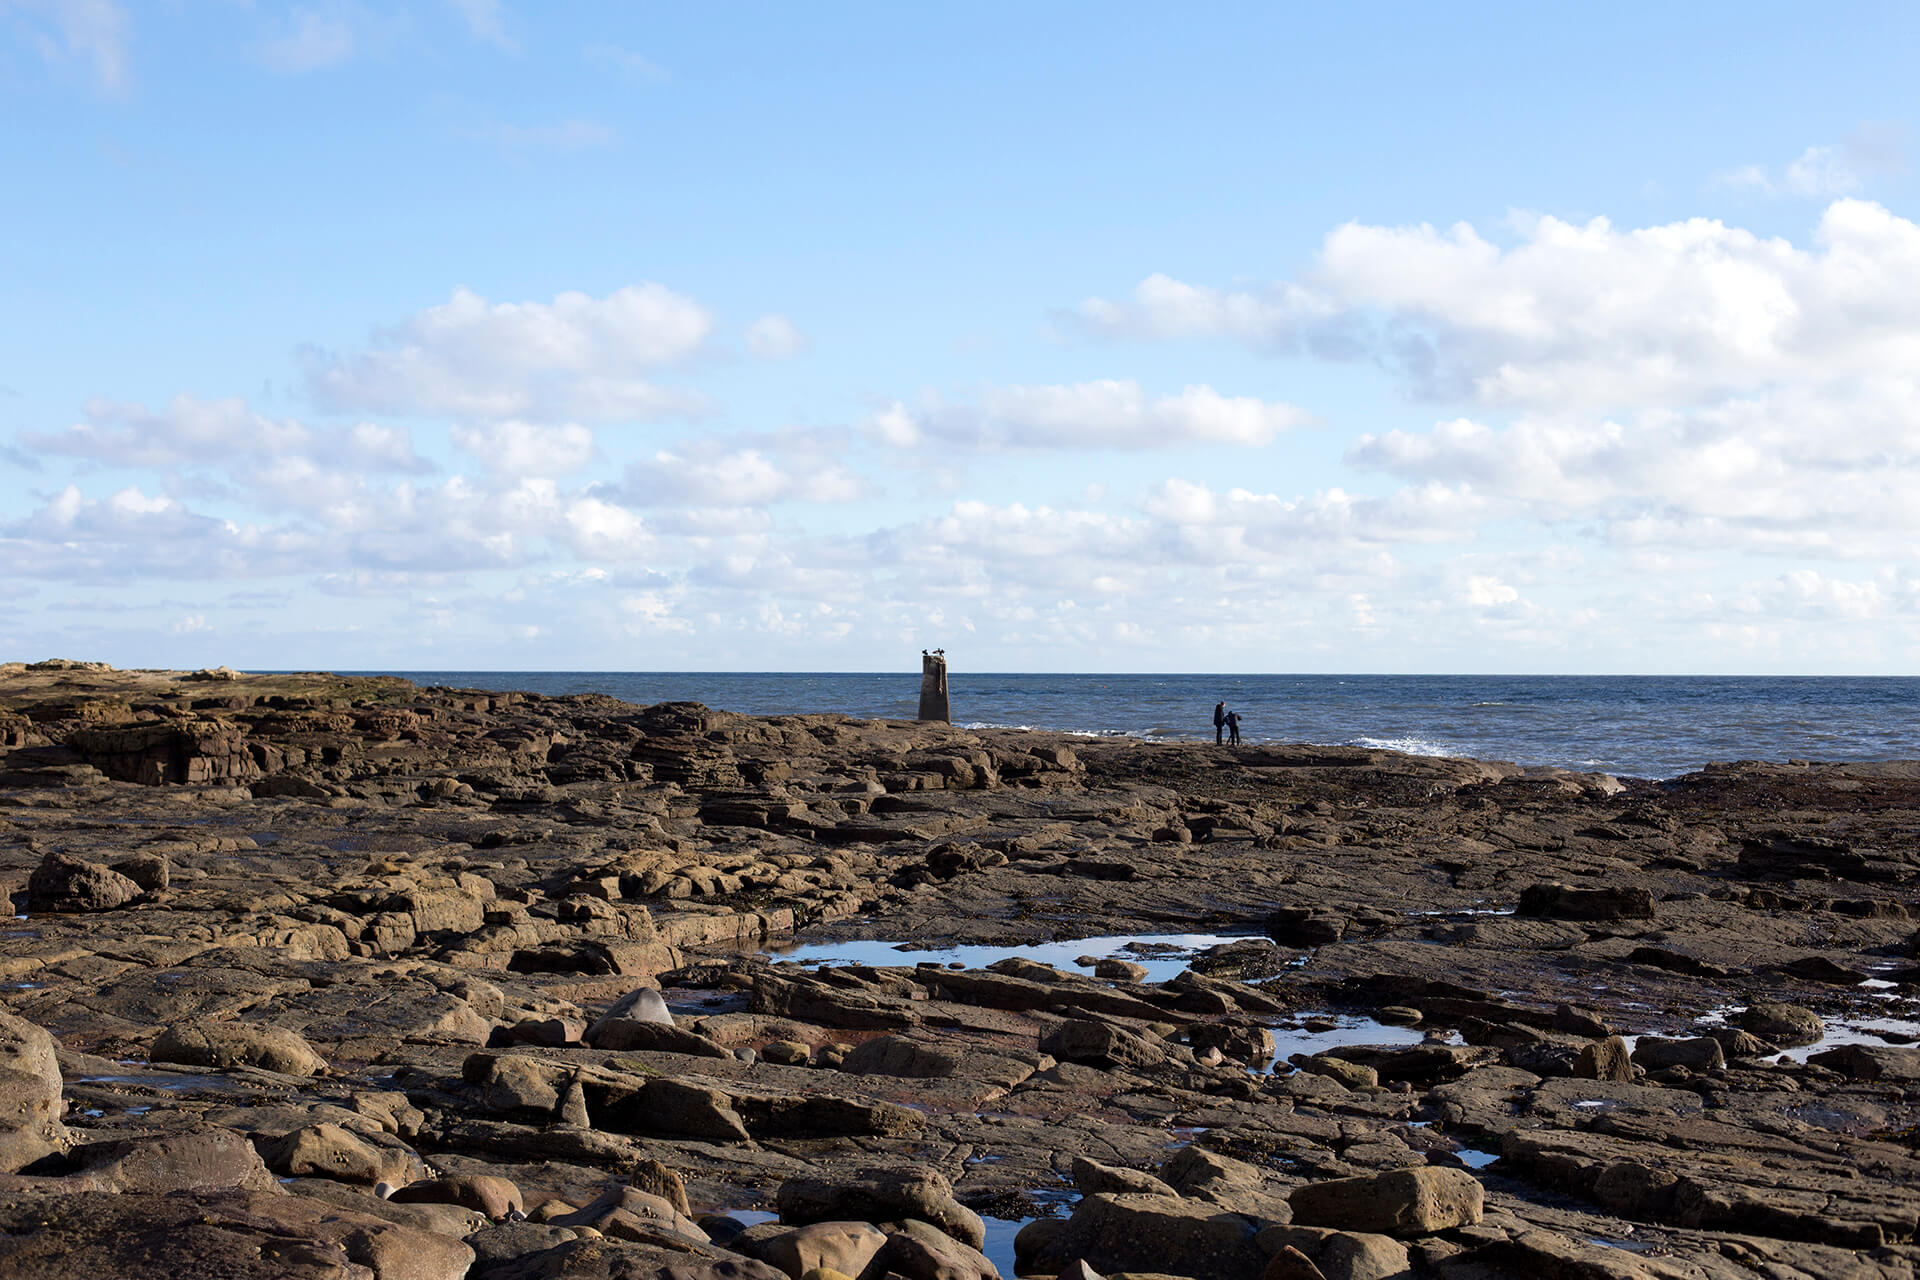 WeAreShuffle, Agency, Creative, Photography, Film, Production, Beach, Lighthouse, Whitley Bay, Sky, Clouds, Sea, Rocks